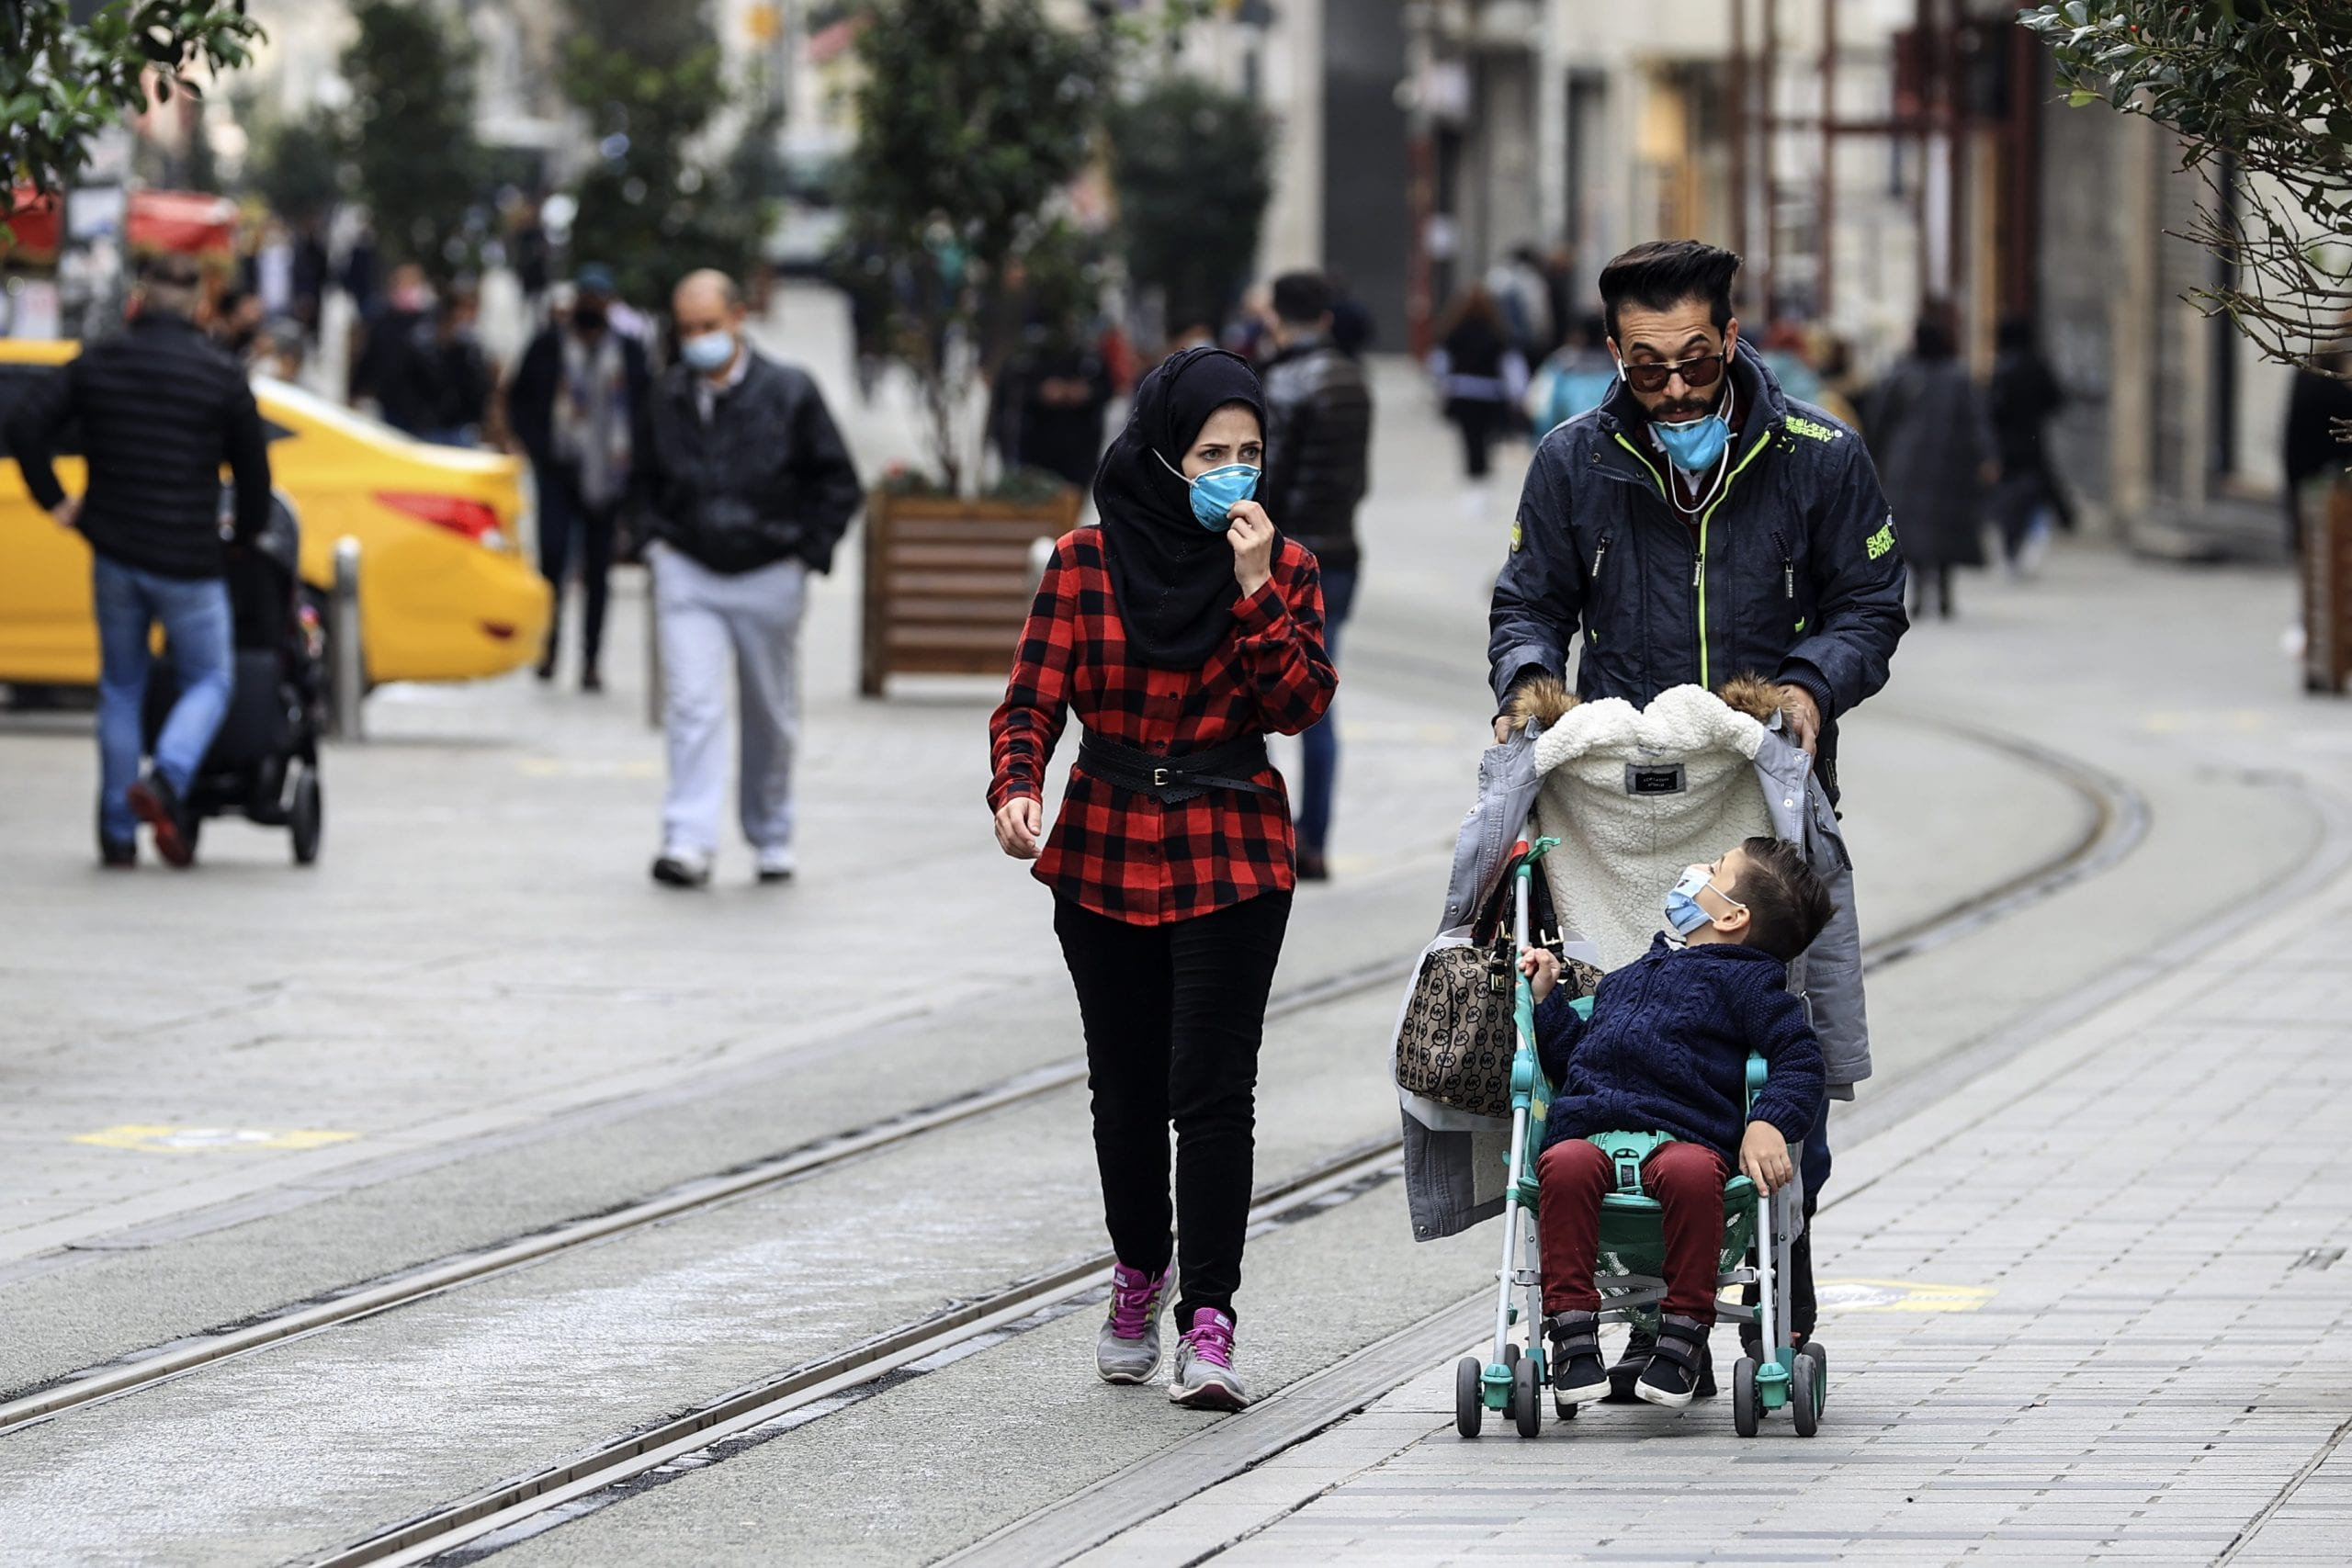 Vaccine expectations amid COVID-19 outbreak in Turkey